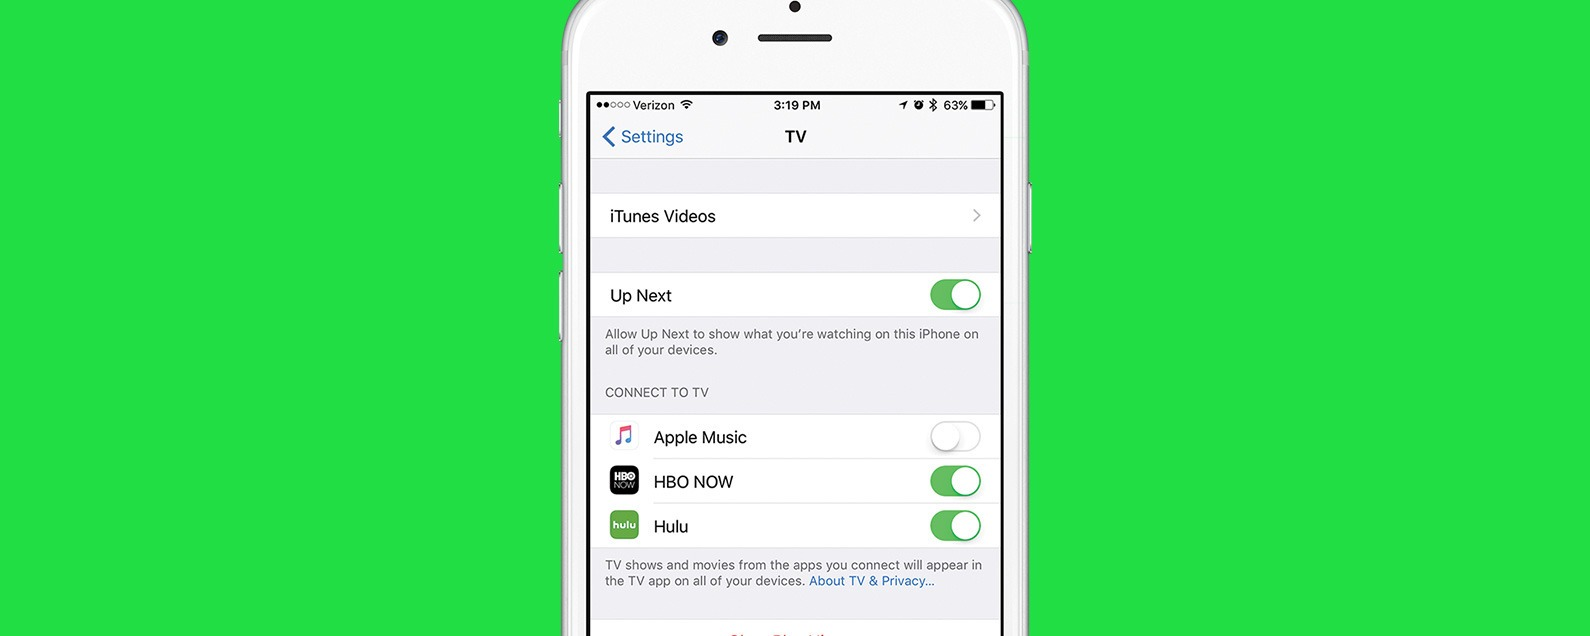 How to Connect Apple Music to the TV App on iPhone | iPhoneLife com